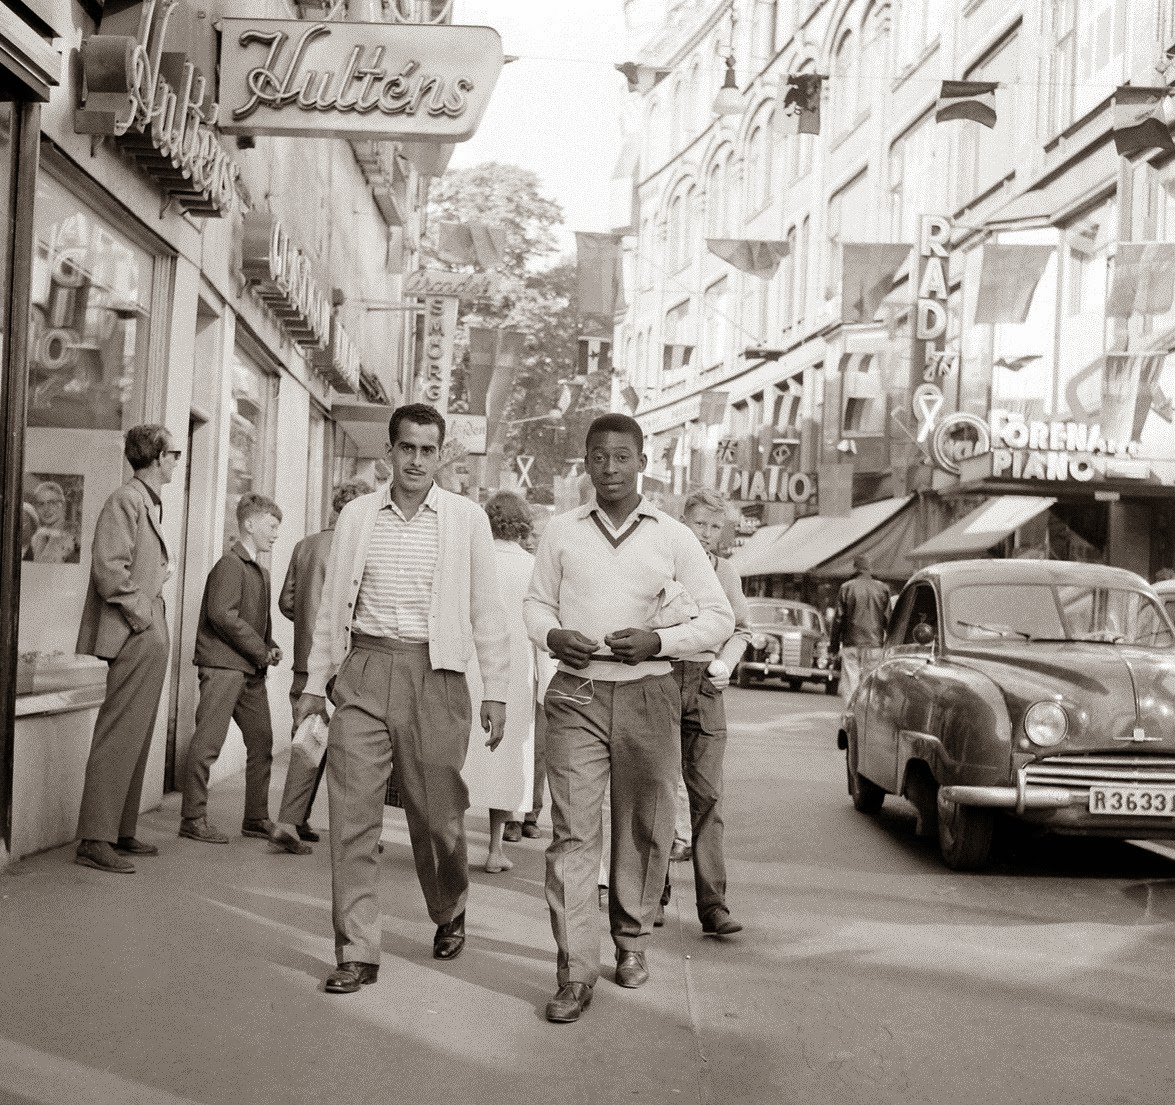 A 17 year-old Pele on a street of Sweden before the 1958 World Cup color